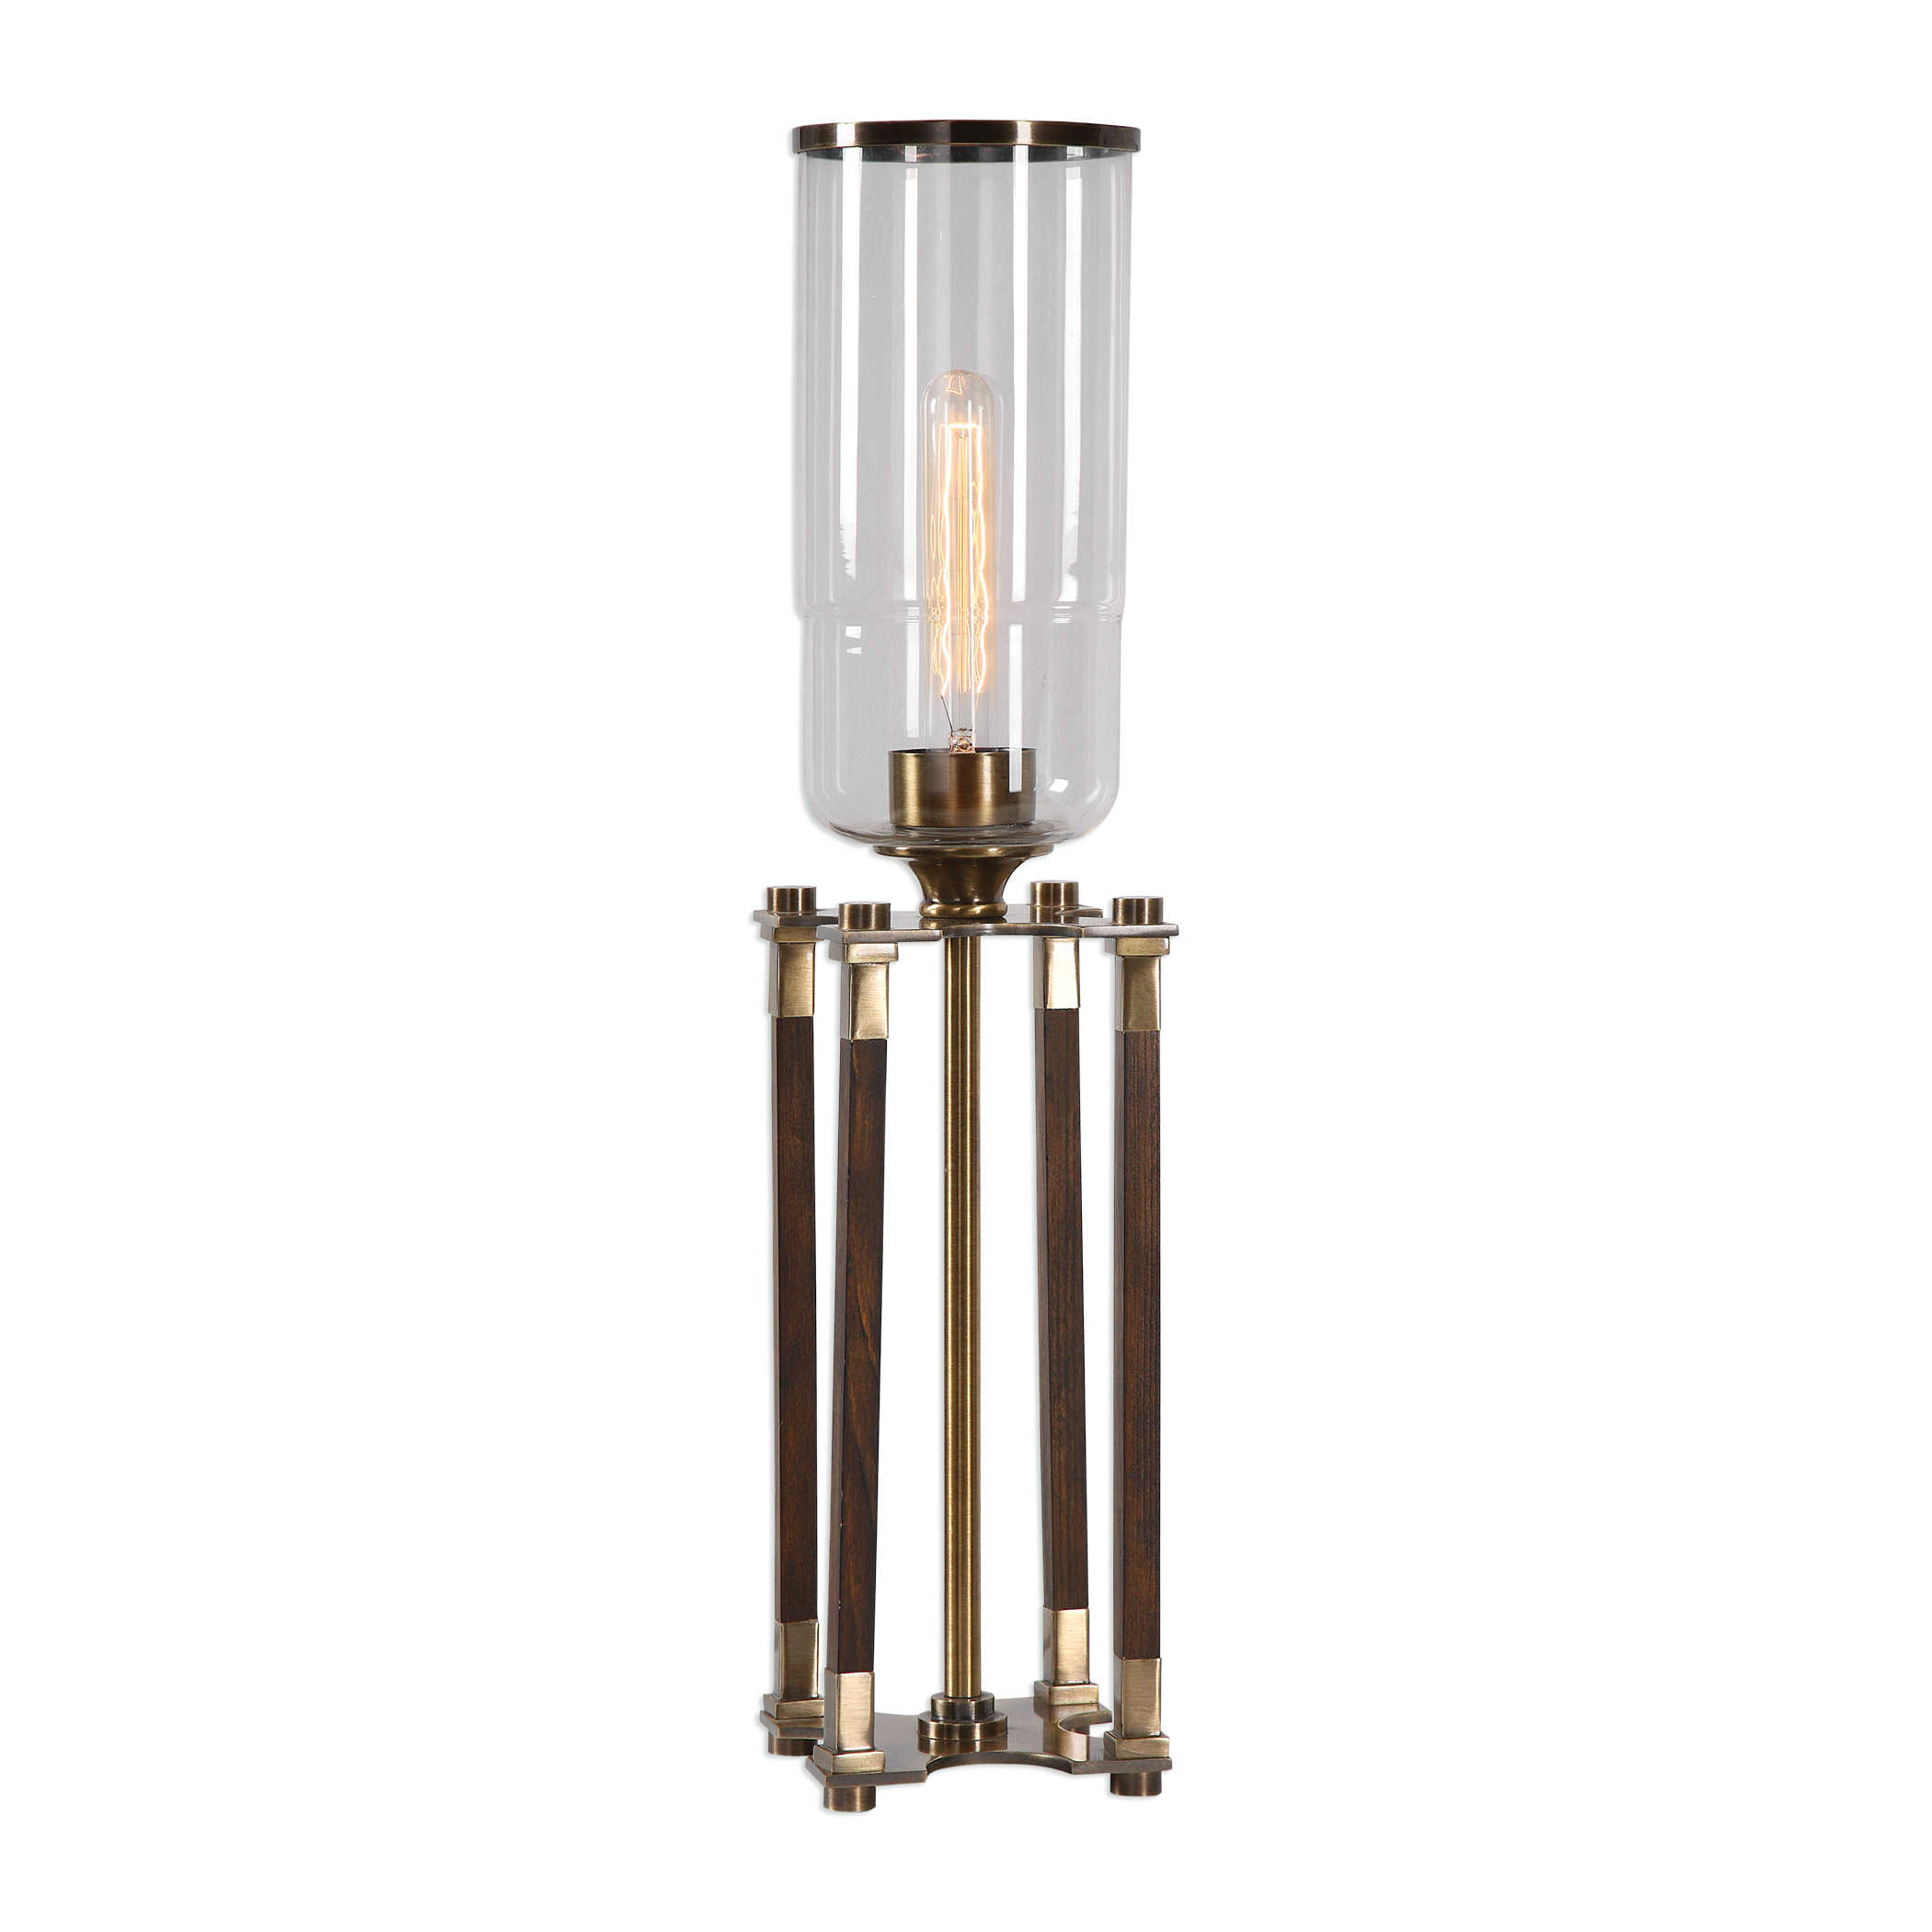 Glass Hurricane Lamp-$240.00